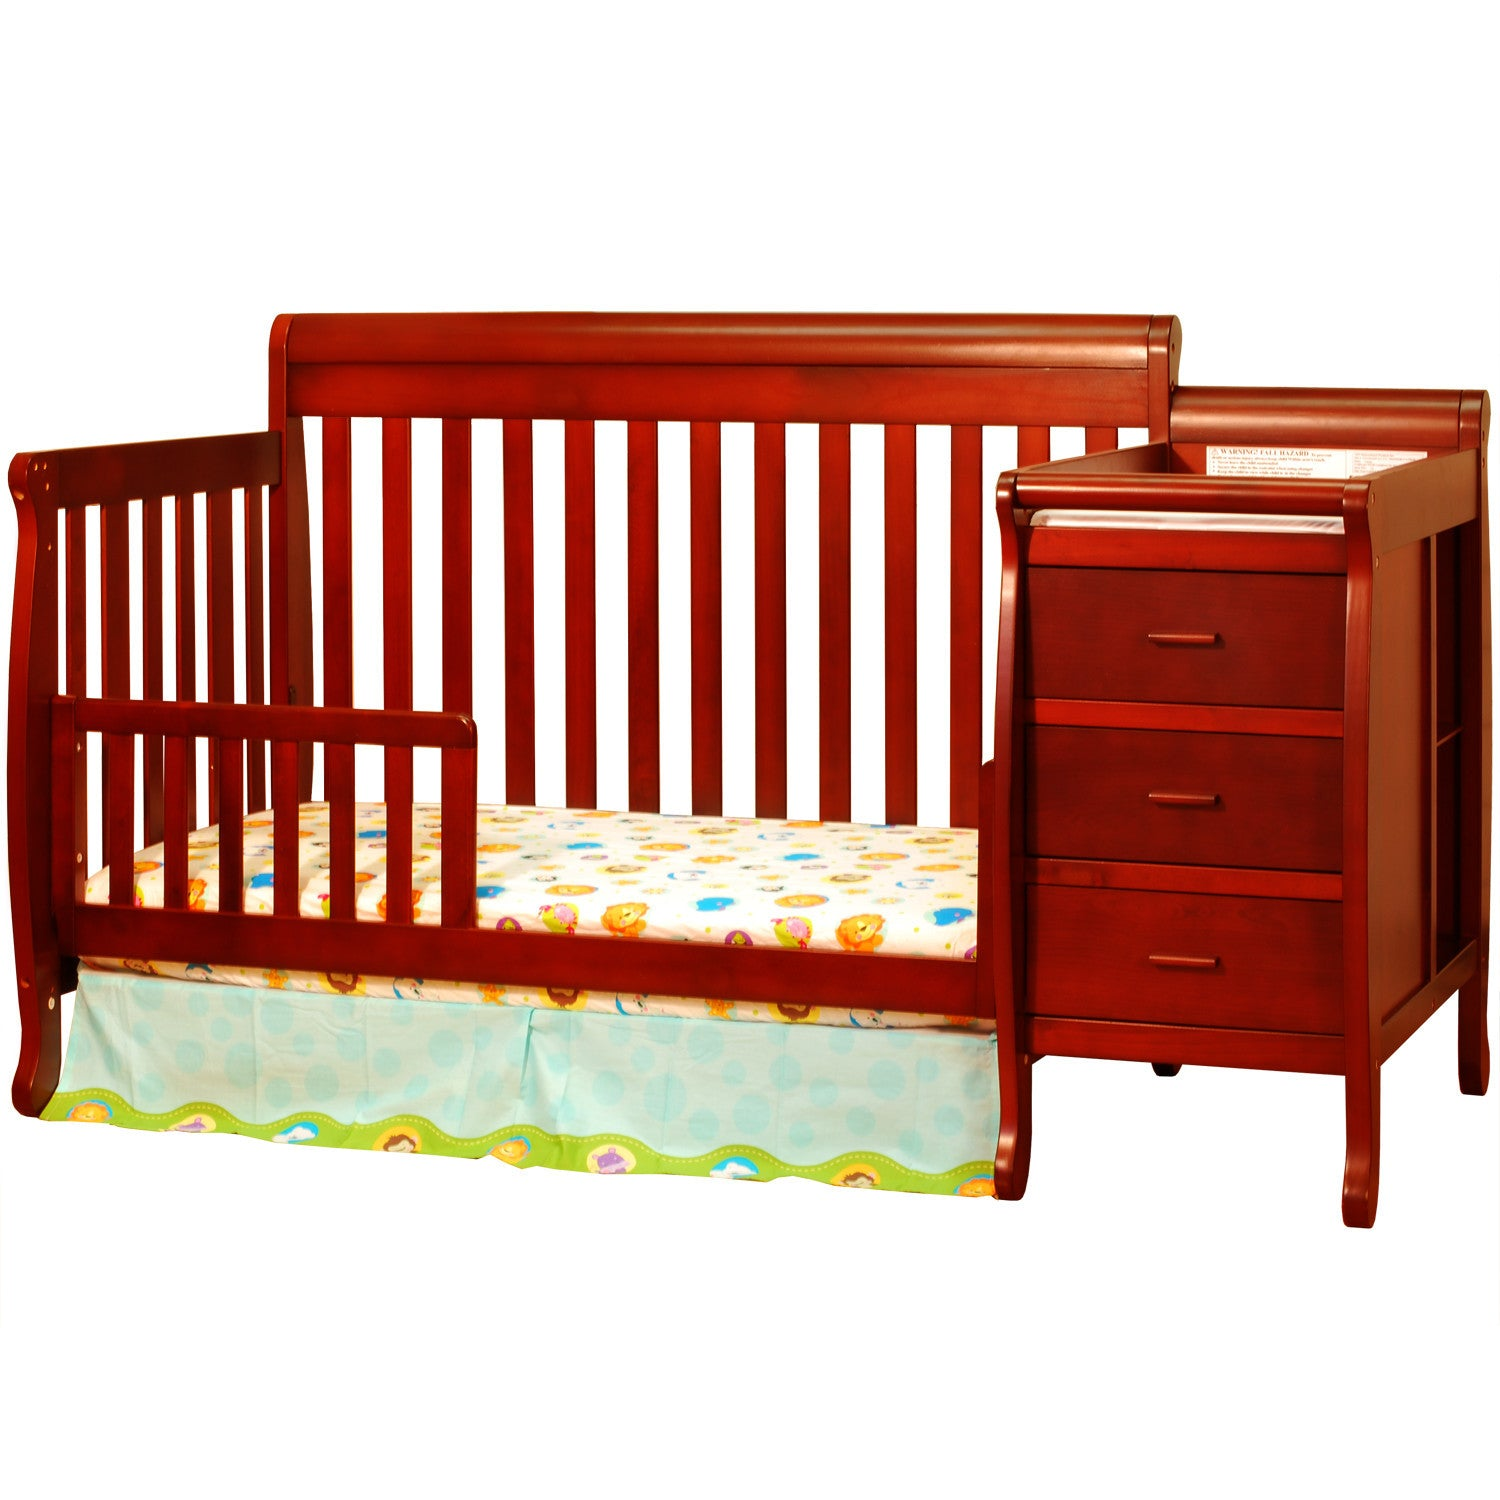 Valtrex 1 gm caplet price.doc - Baby Cribs With Changing Tables Afg Kimberly 4in1 Convertible Crib And Changer Combo 518 Afg